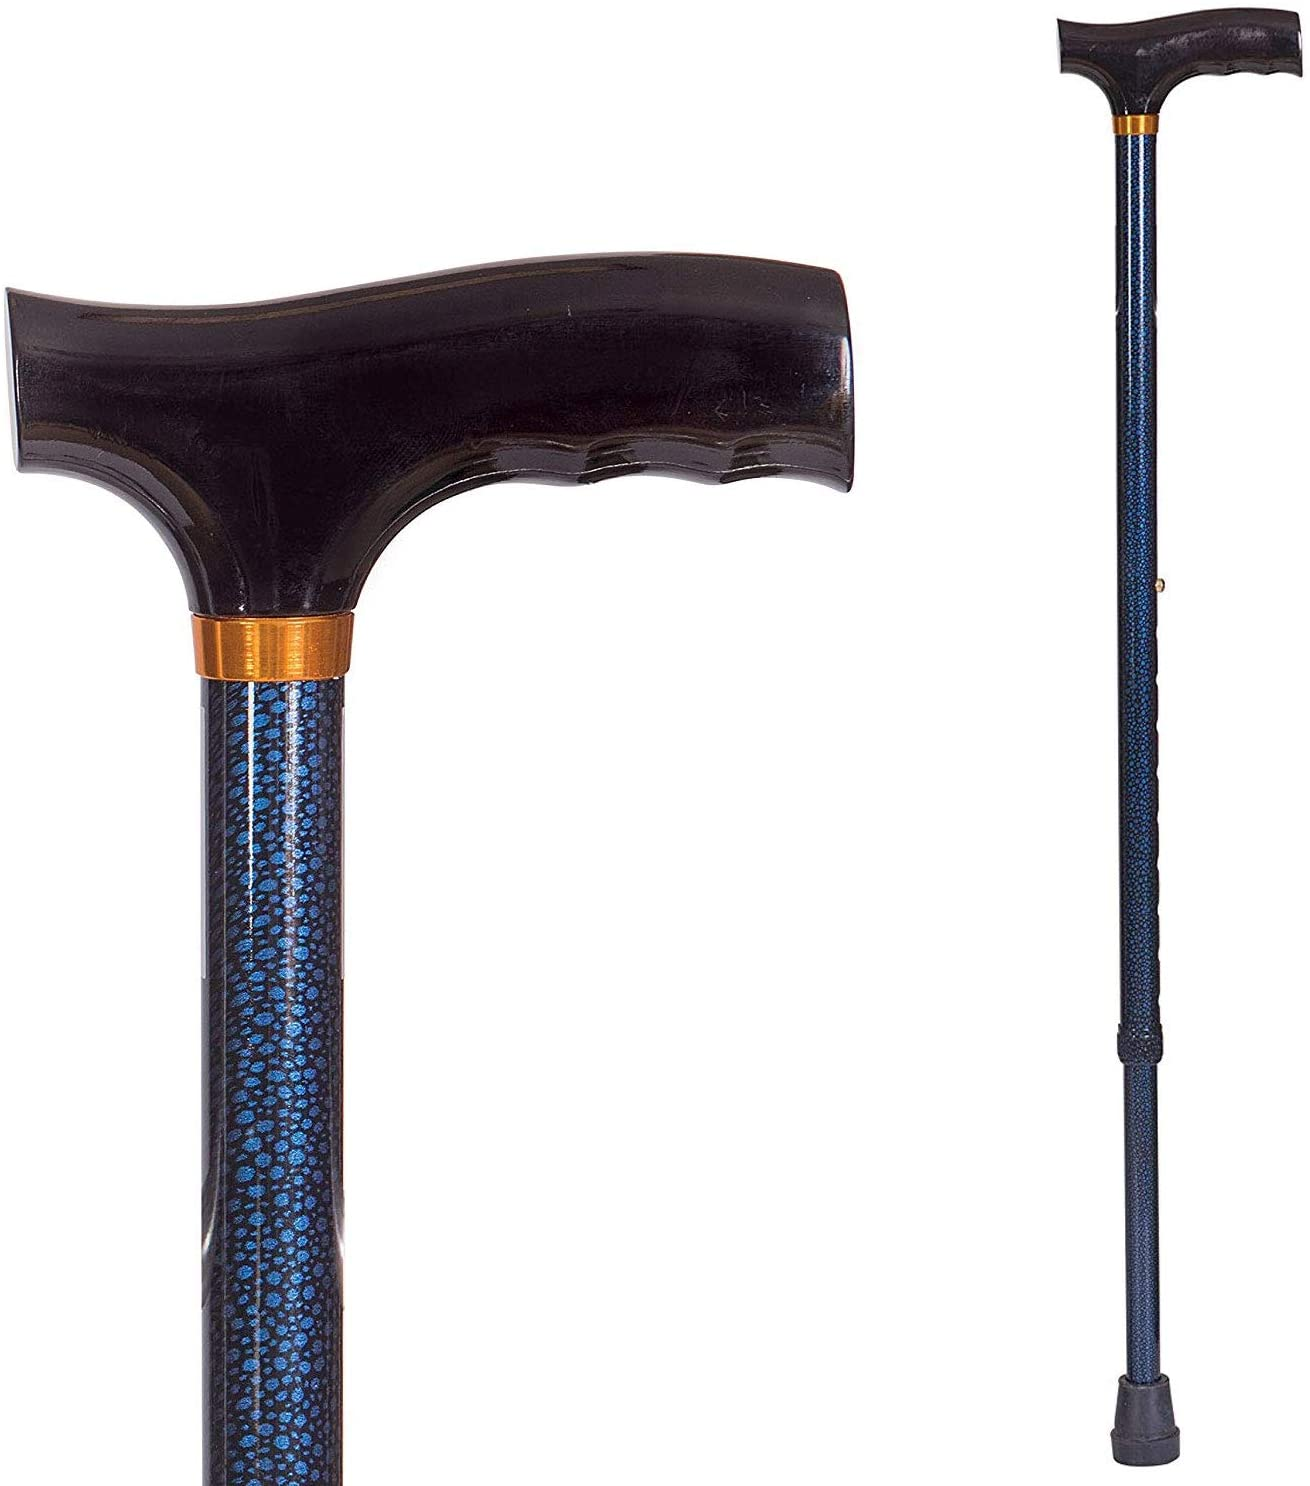 DMI Lightweight Aluminum Adjustable NEW Cane with Derby-Top Walking Ranking TOP14